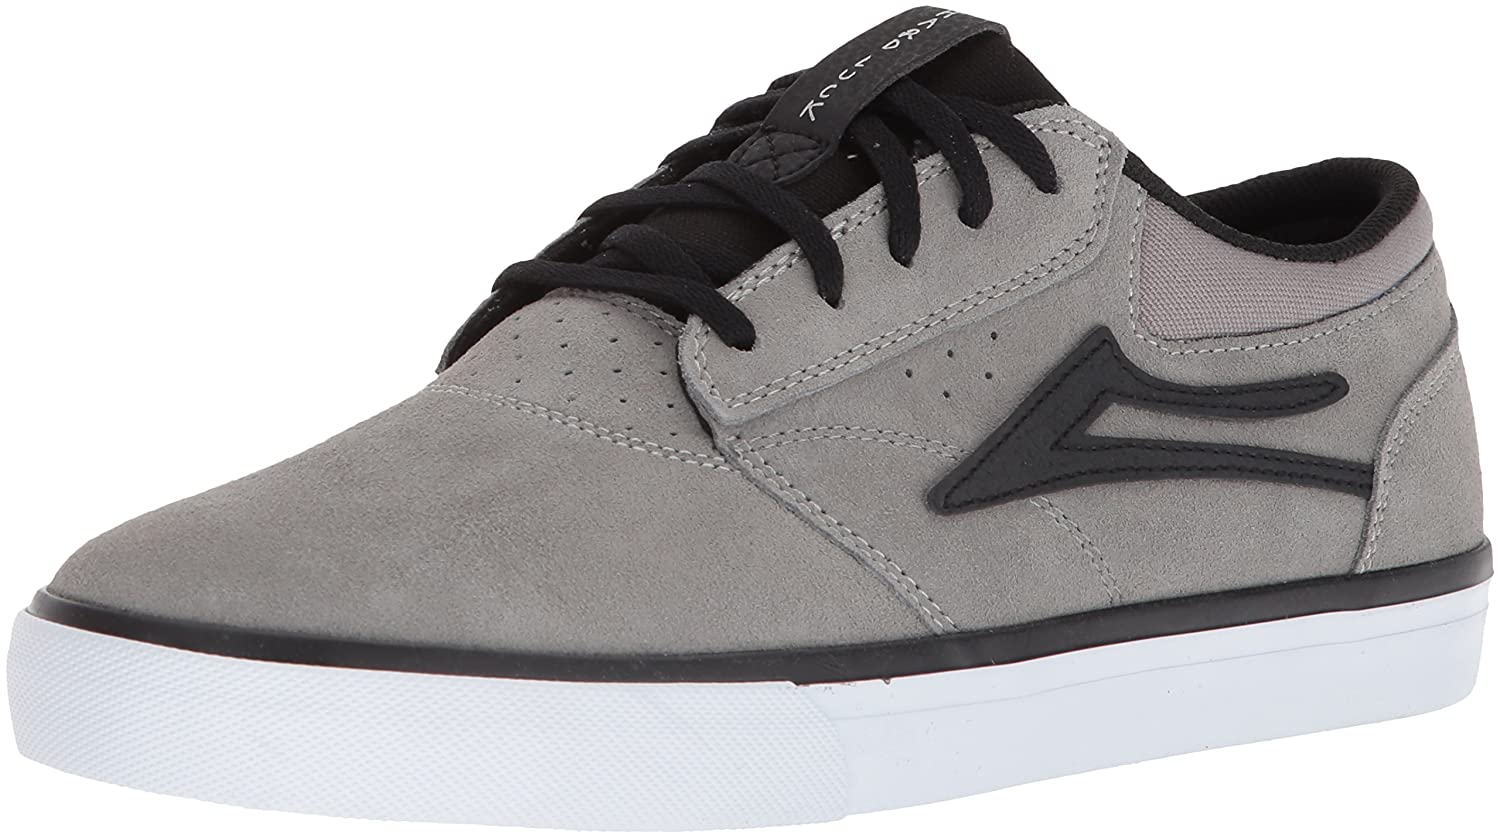 8bf2938851 Lakai Griffin Hard Luck Shoes